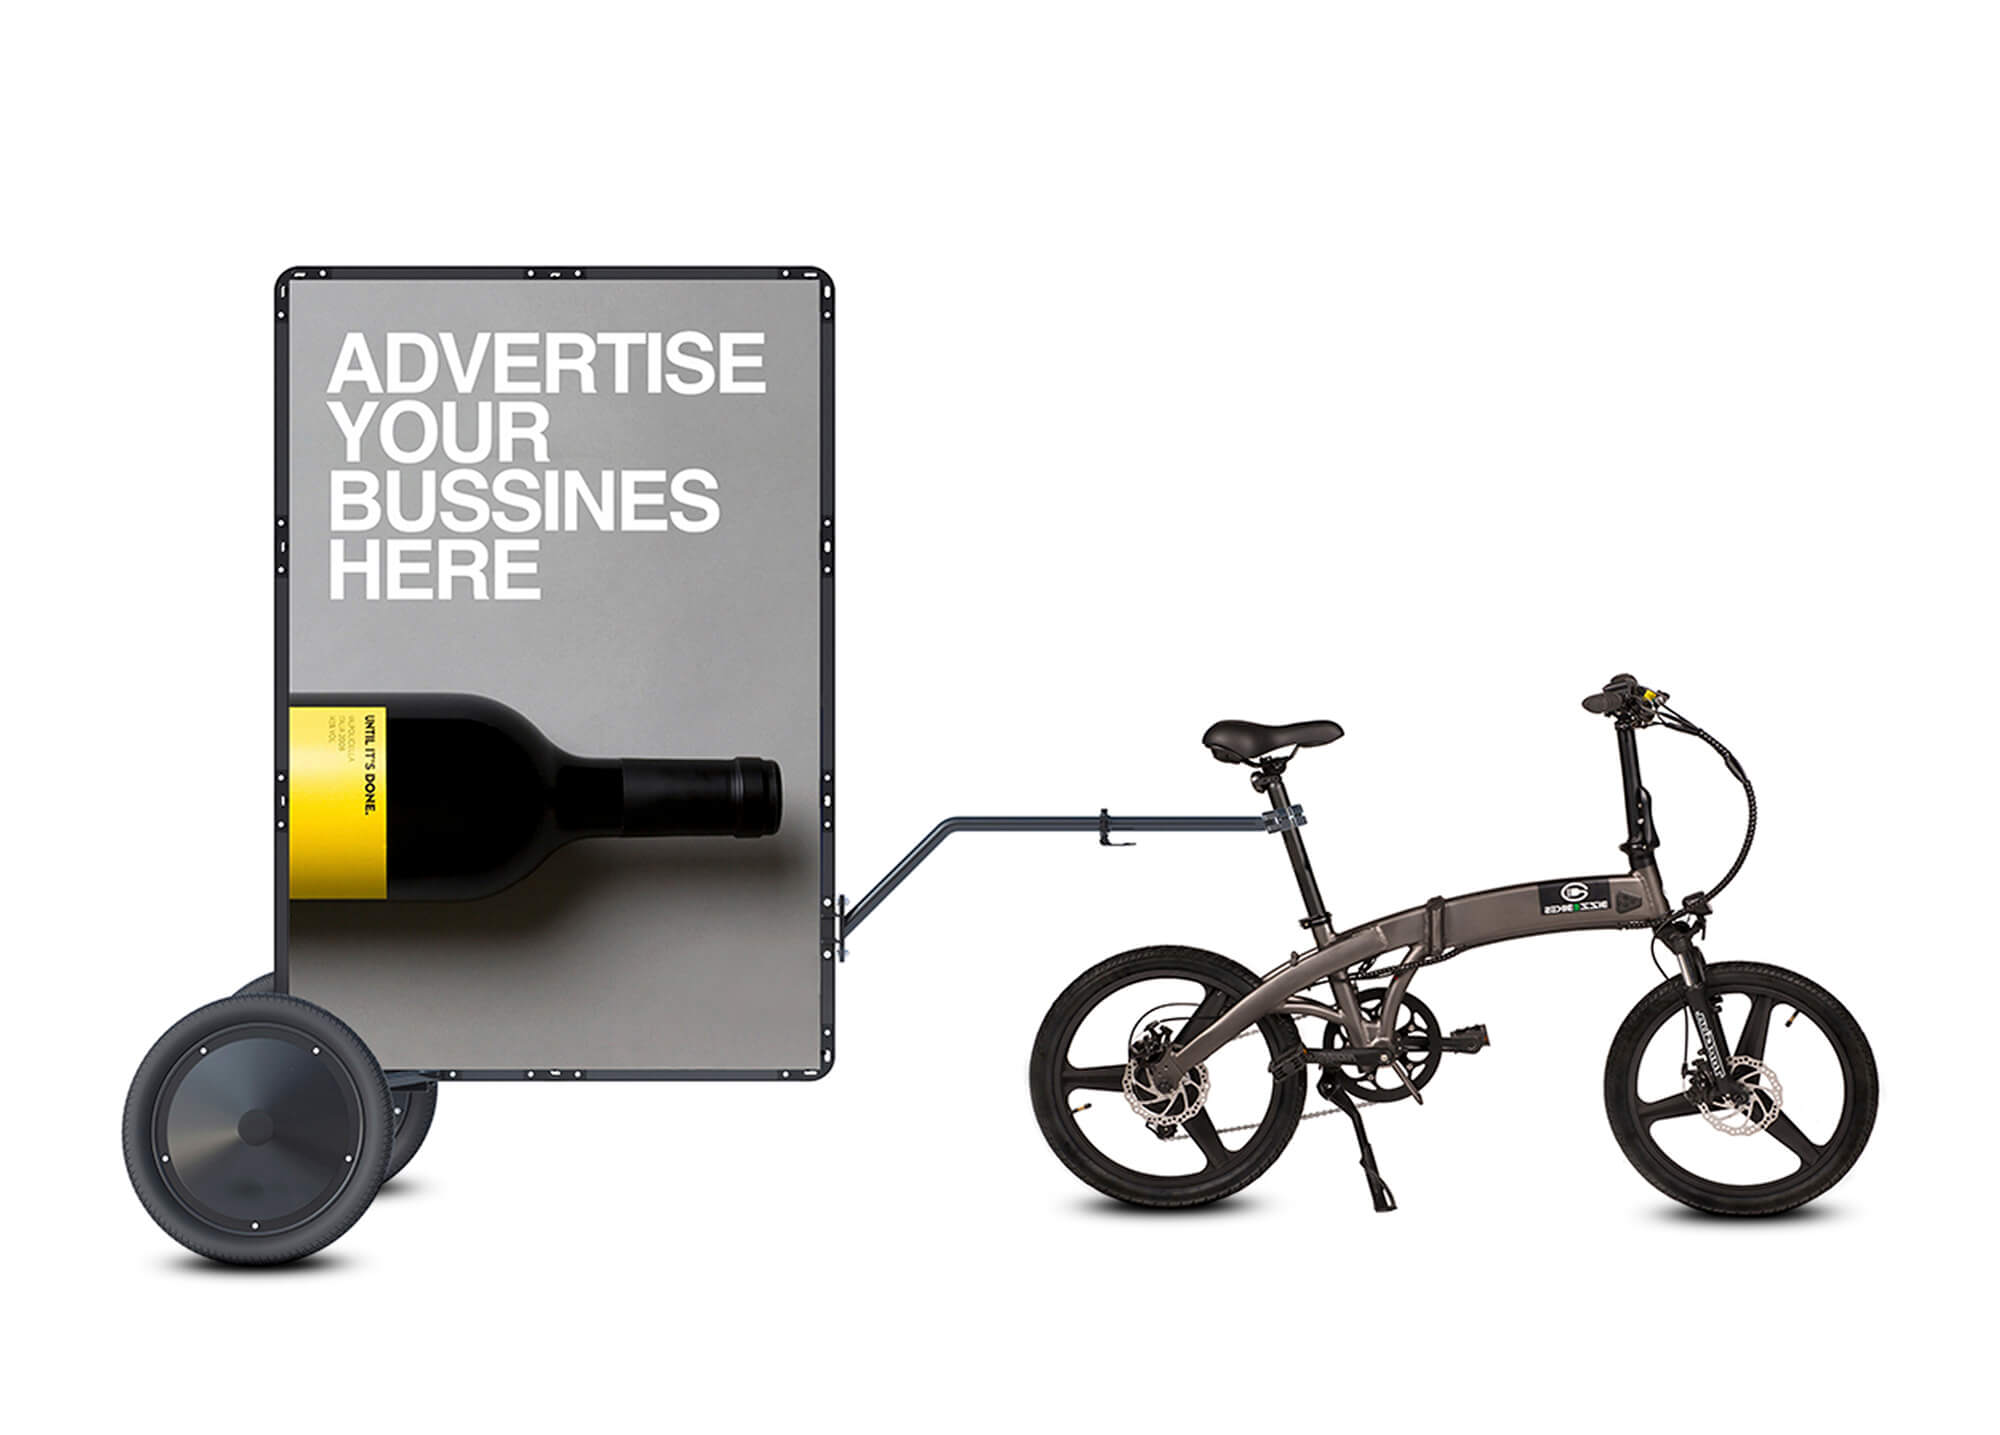 AdBicy M mobile billboard for bicycle advertising